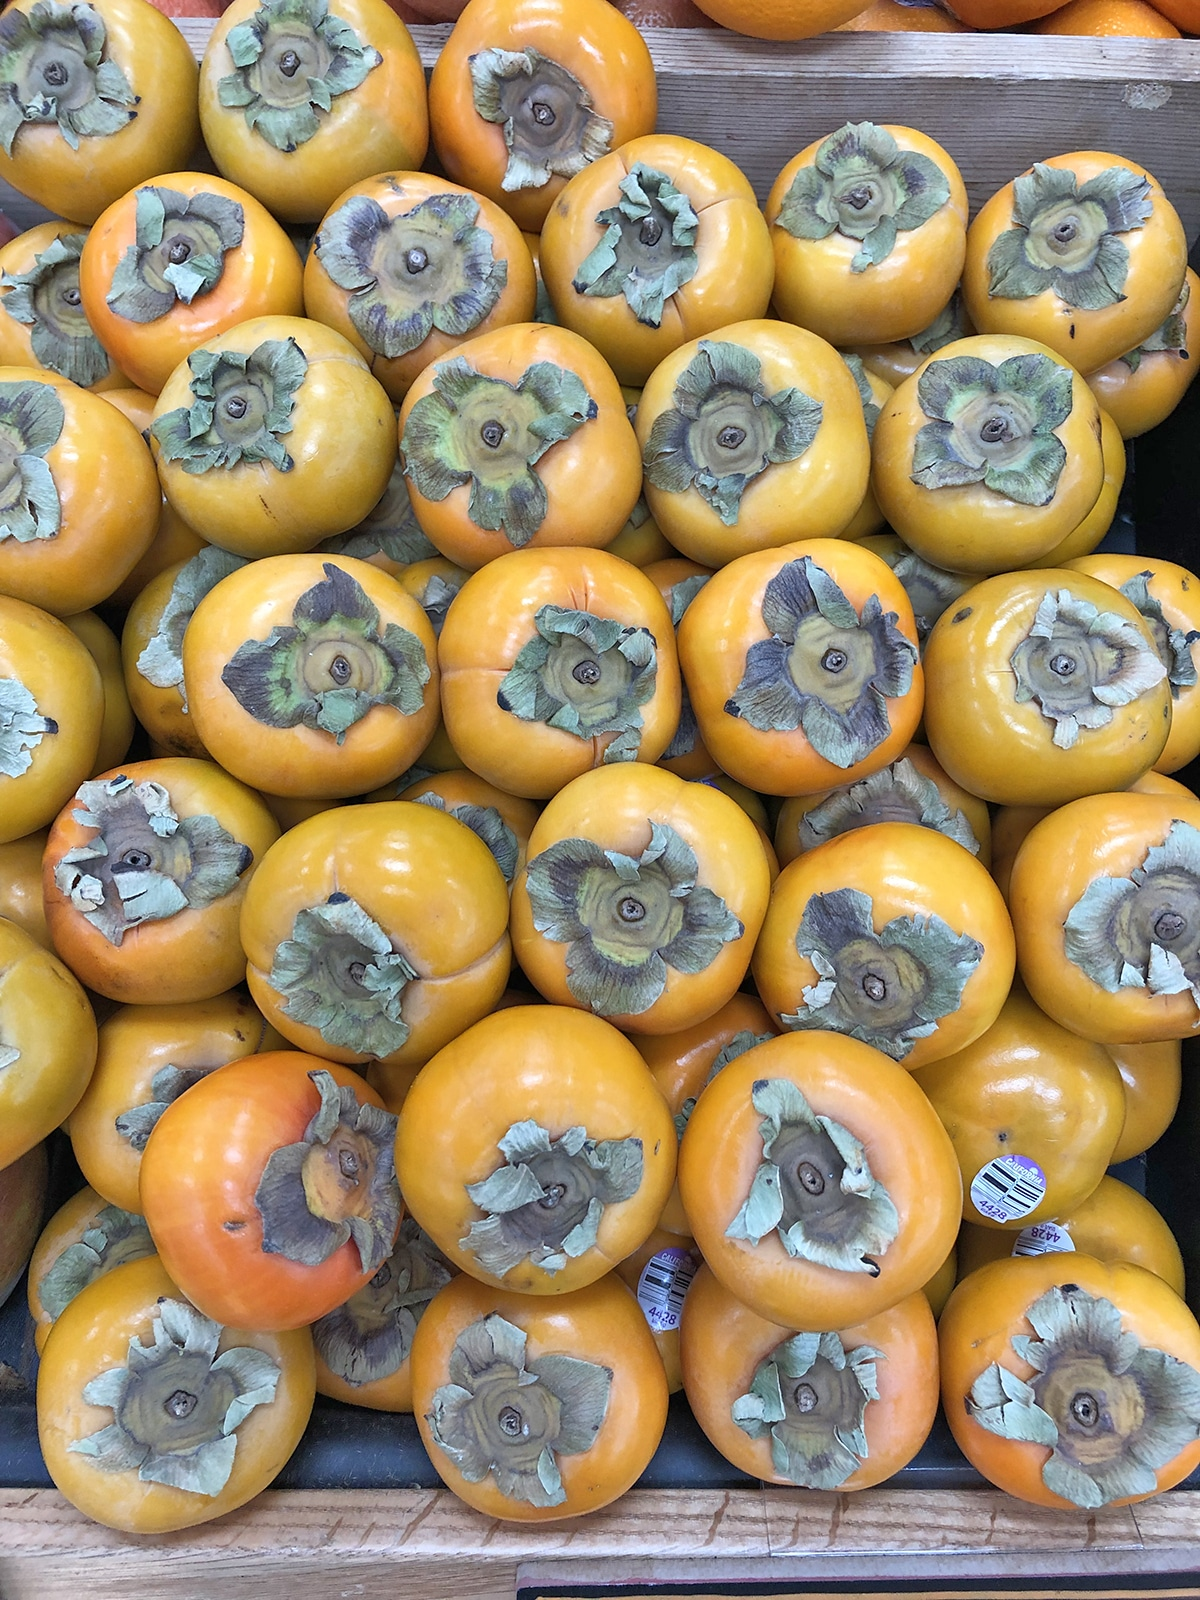 Persimmons on grocery store shelf.